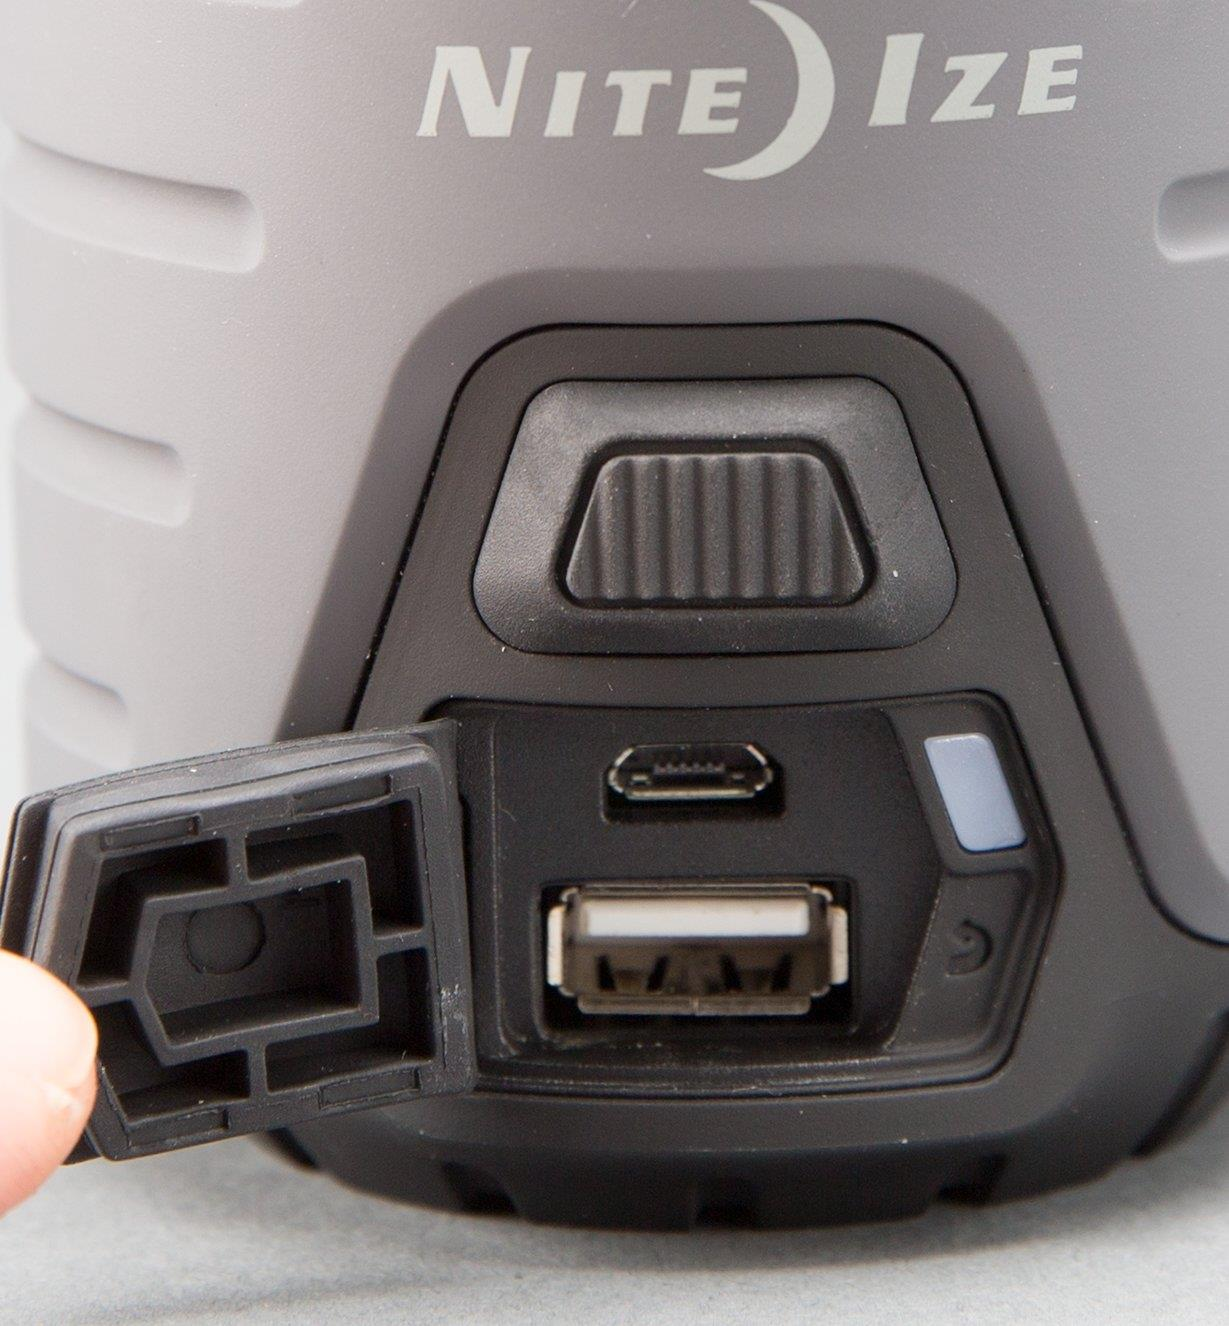 Close-up of USB ports on 300 lm Nite Ize Rechargeable Radiant Lantern